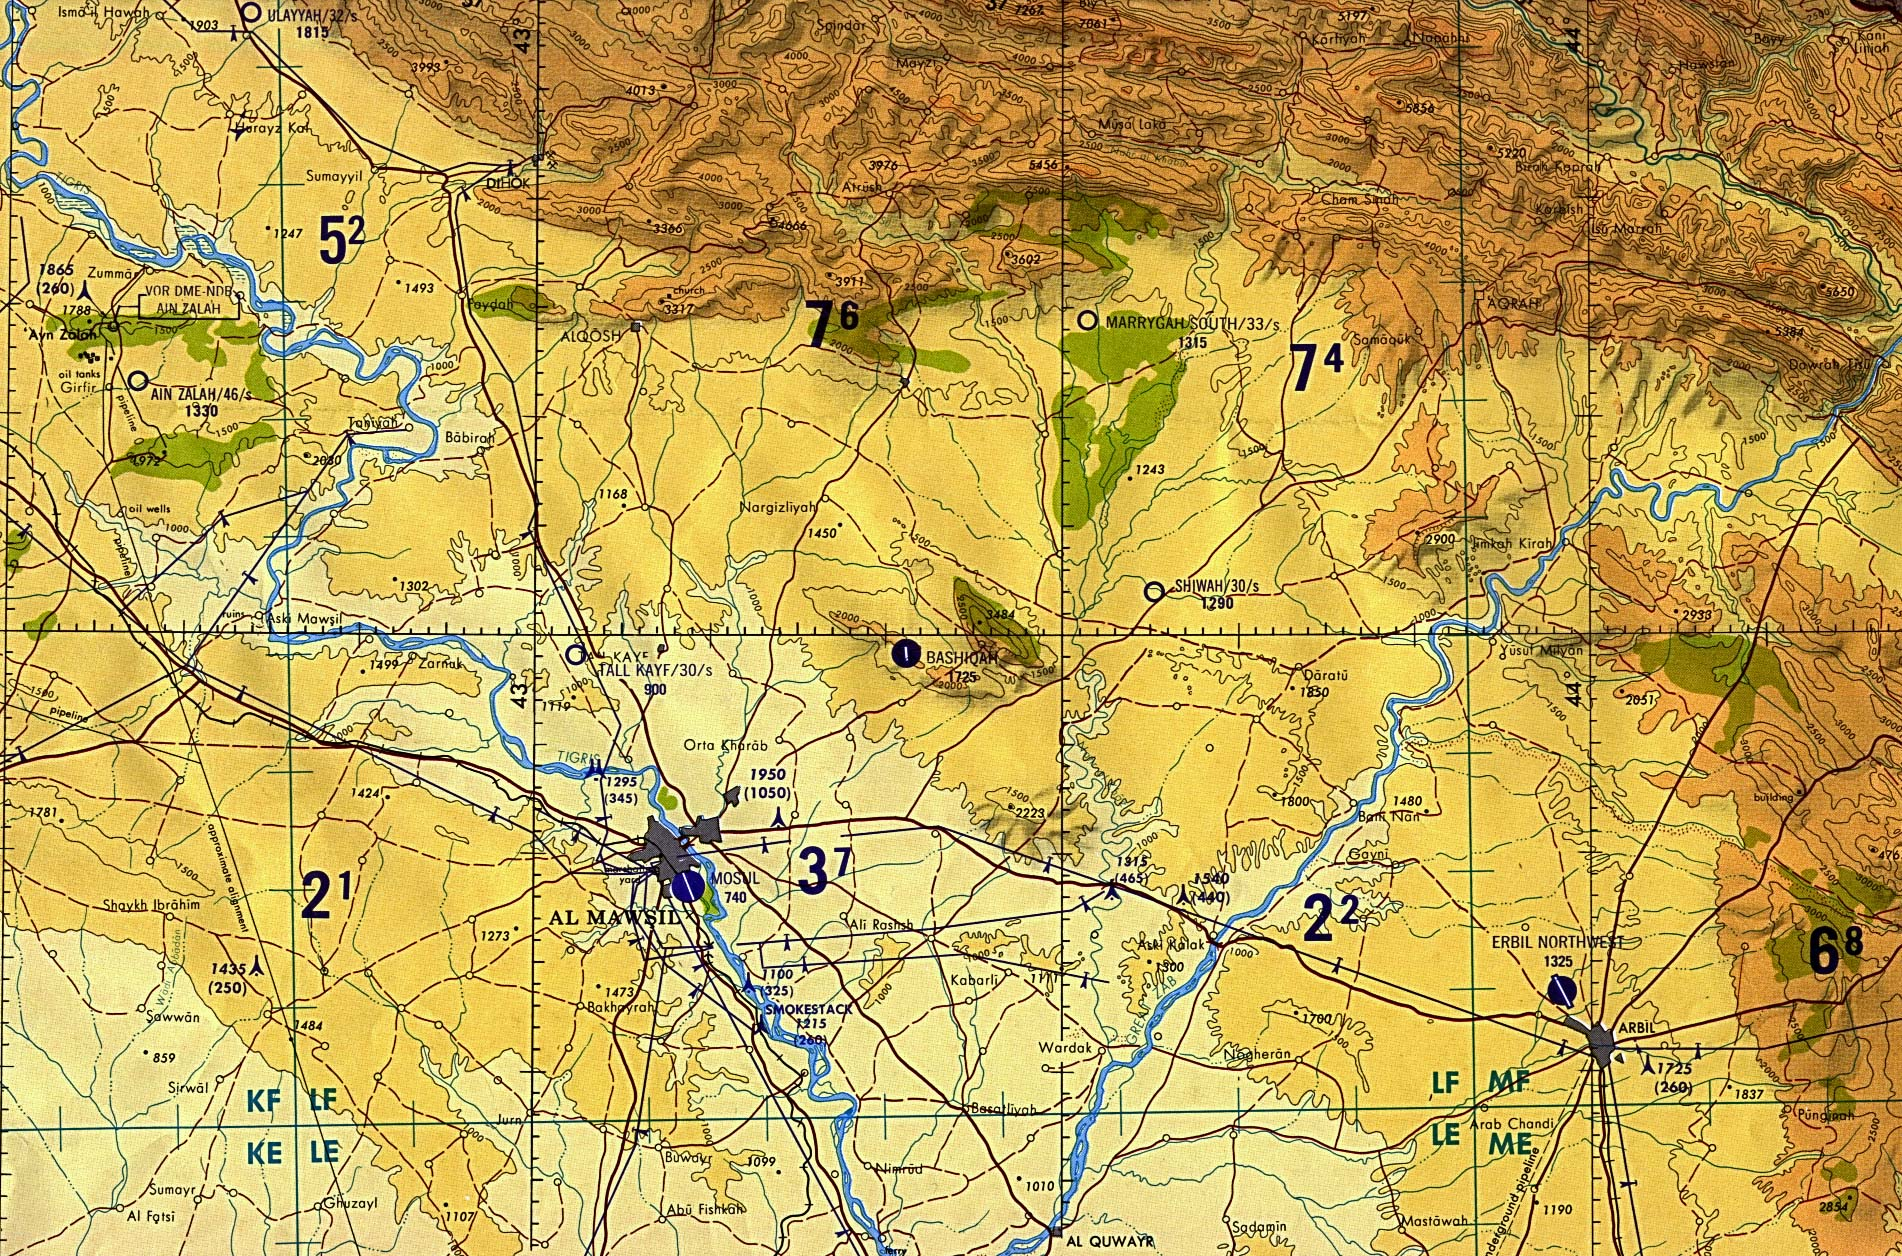 Map Of Iraq Al Mawsil [Mosul]-Arbil Region, Northern Iraq (tactical pilotage chart) original scale 1:500,000 Portion of Defense Mapping Agency TPC G-4B 1989 (927K) Not for navigational use